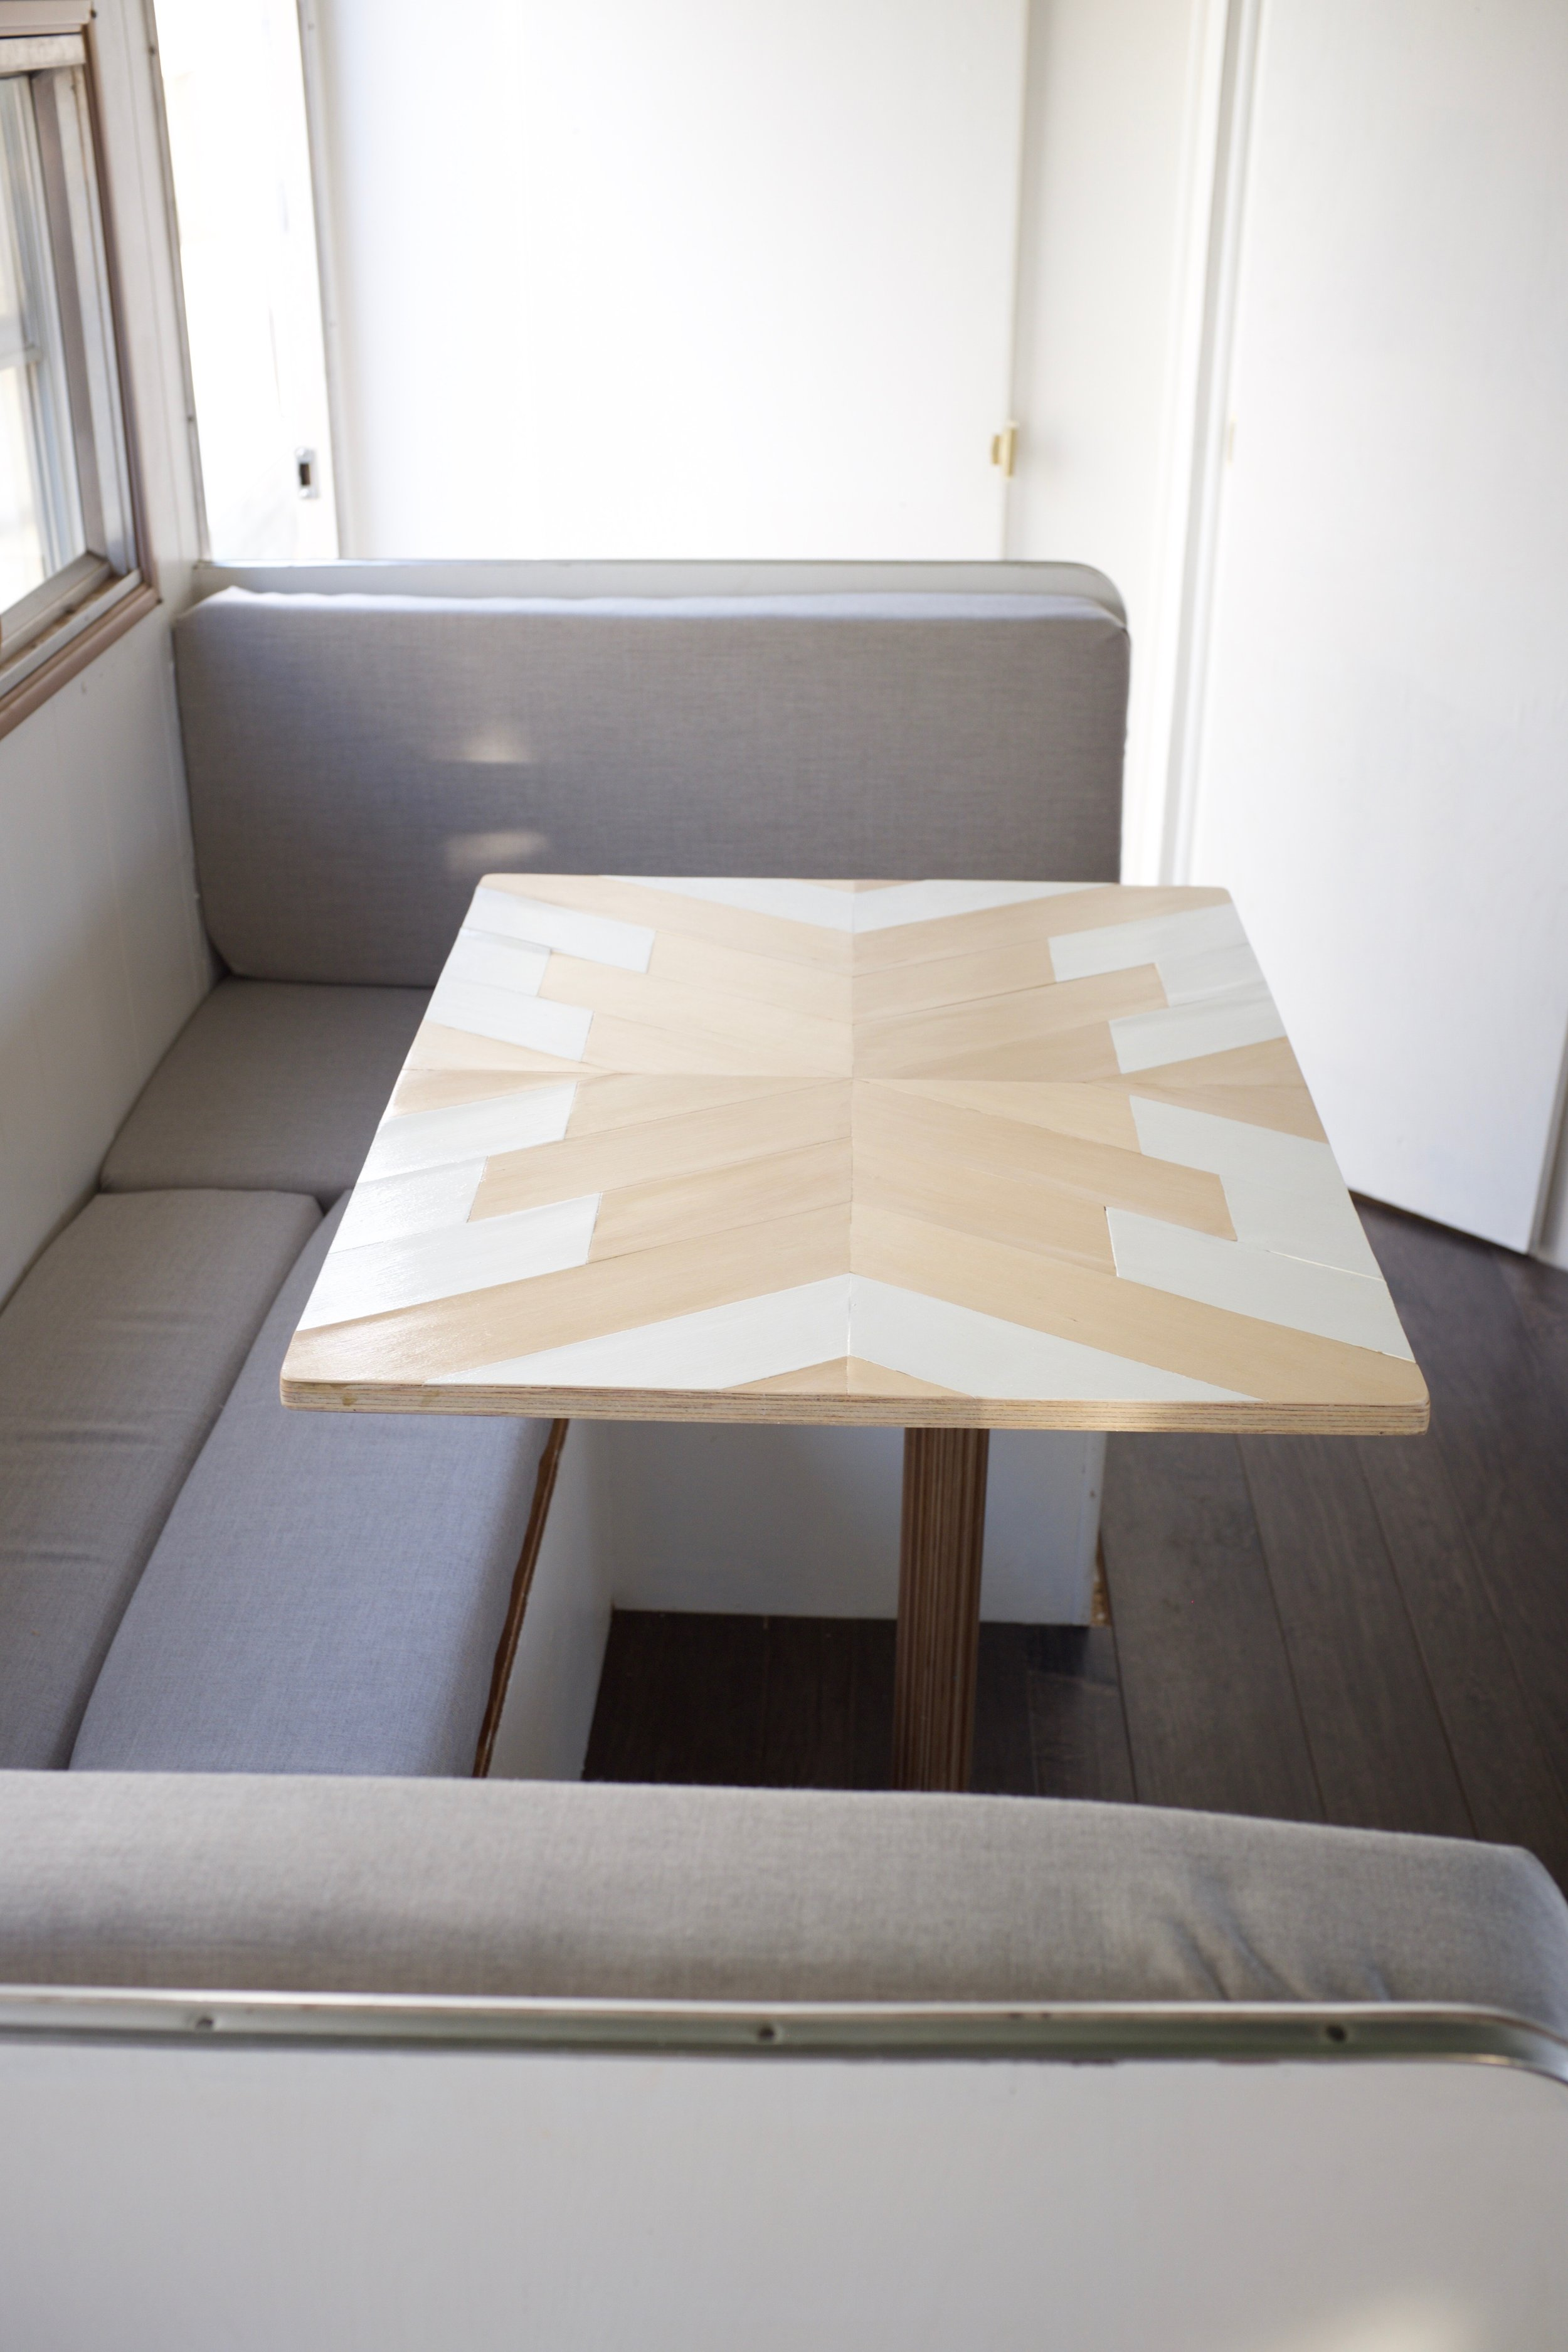 New camper geometric table